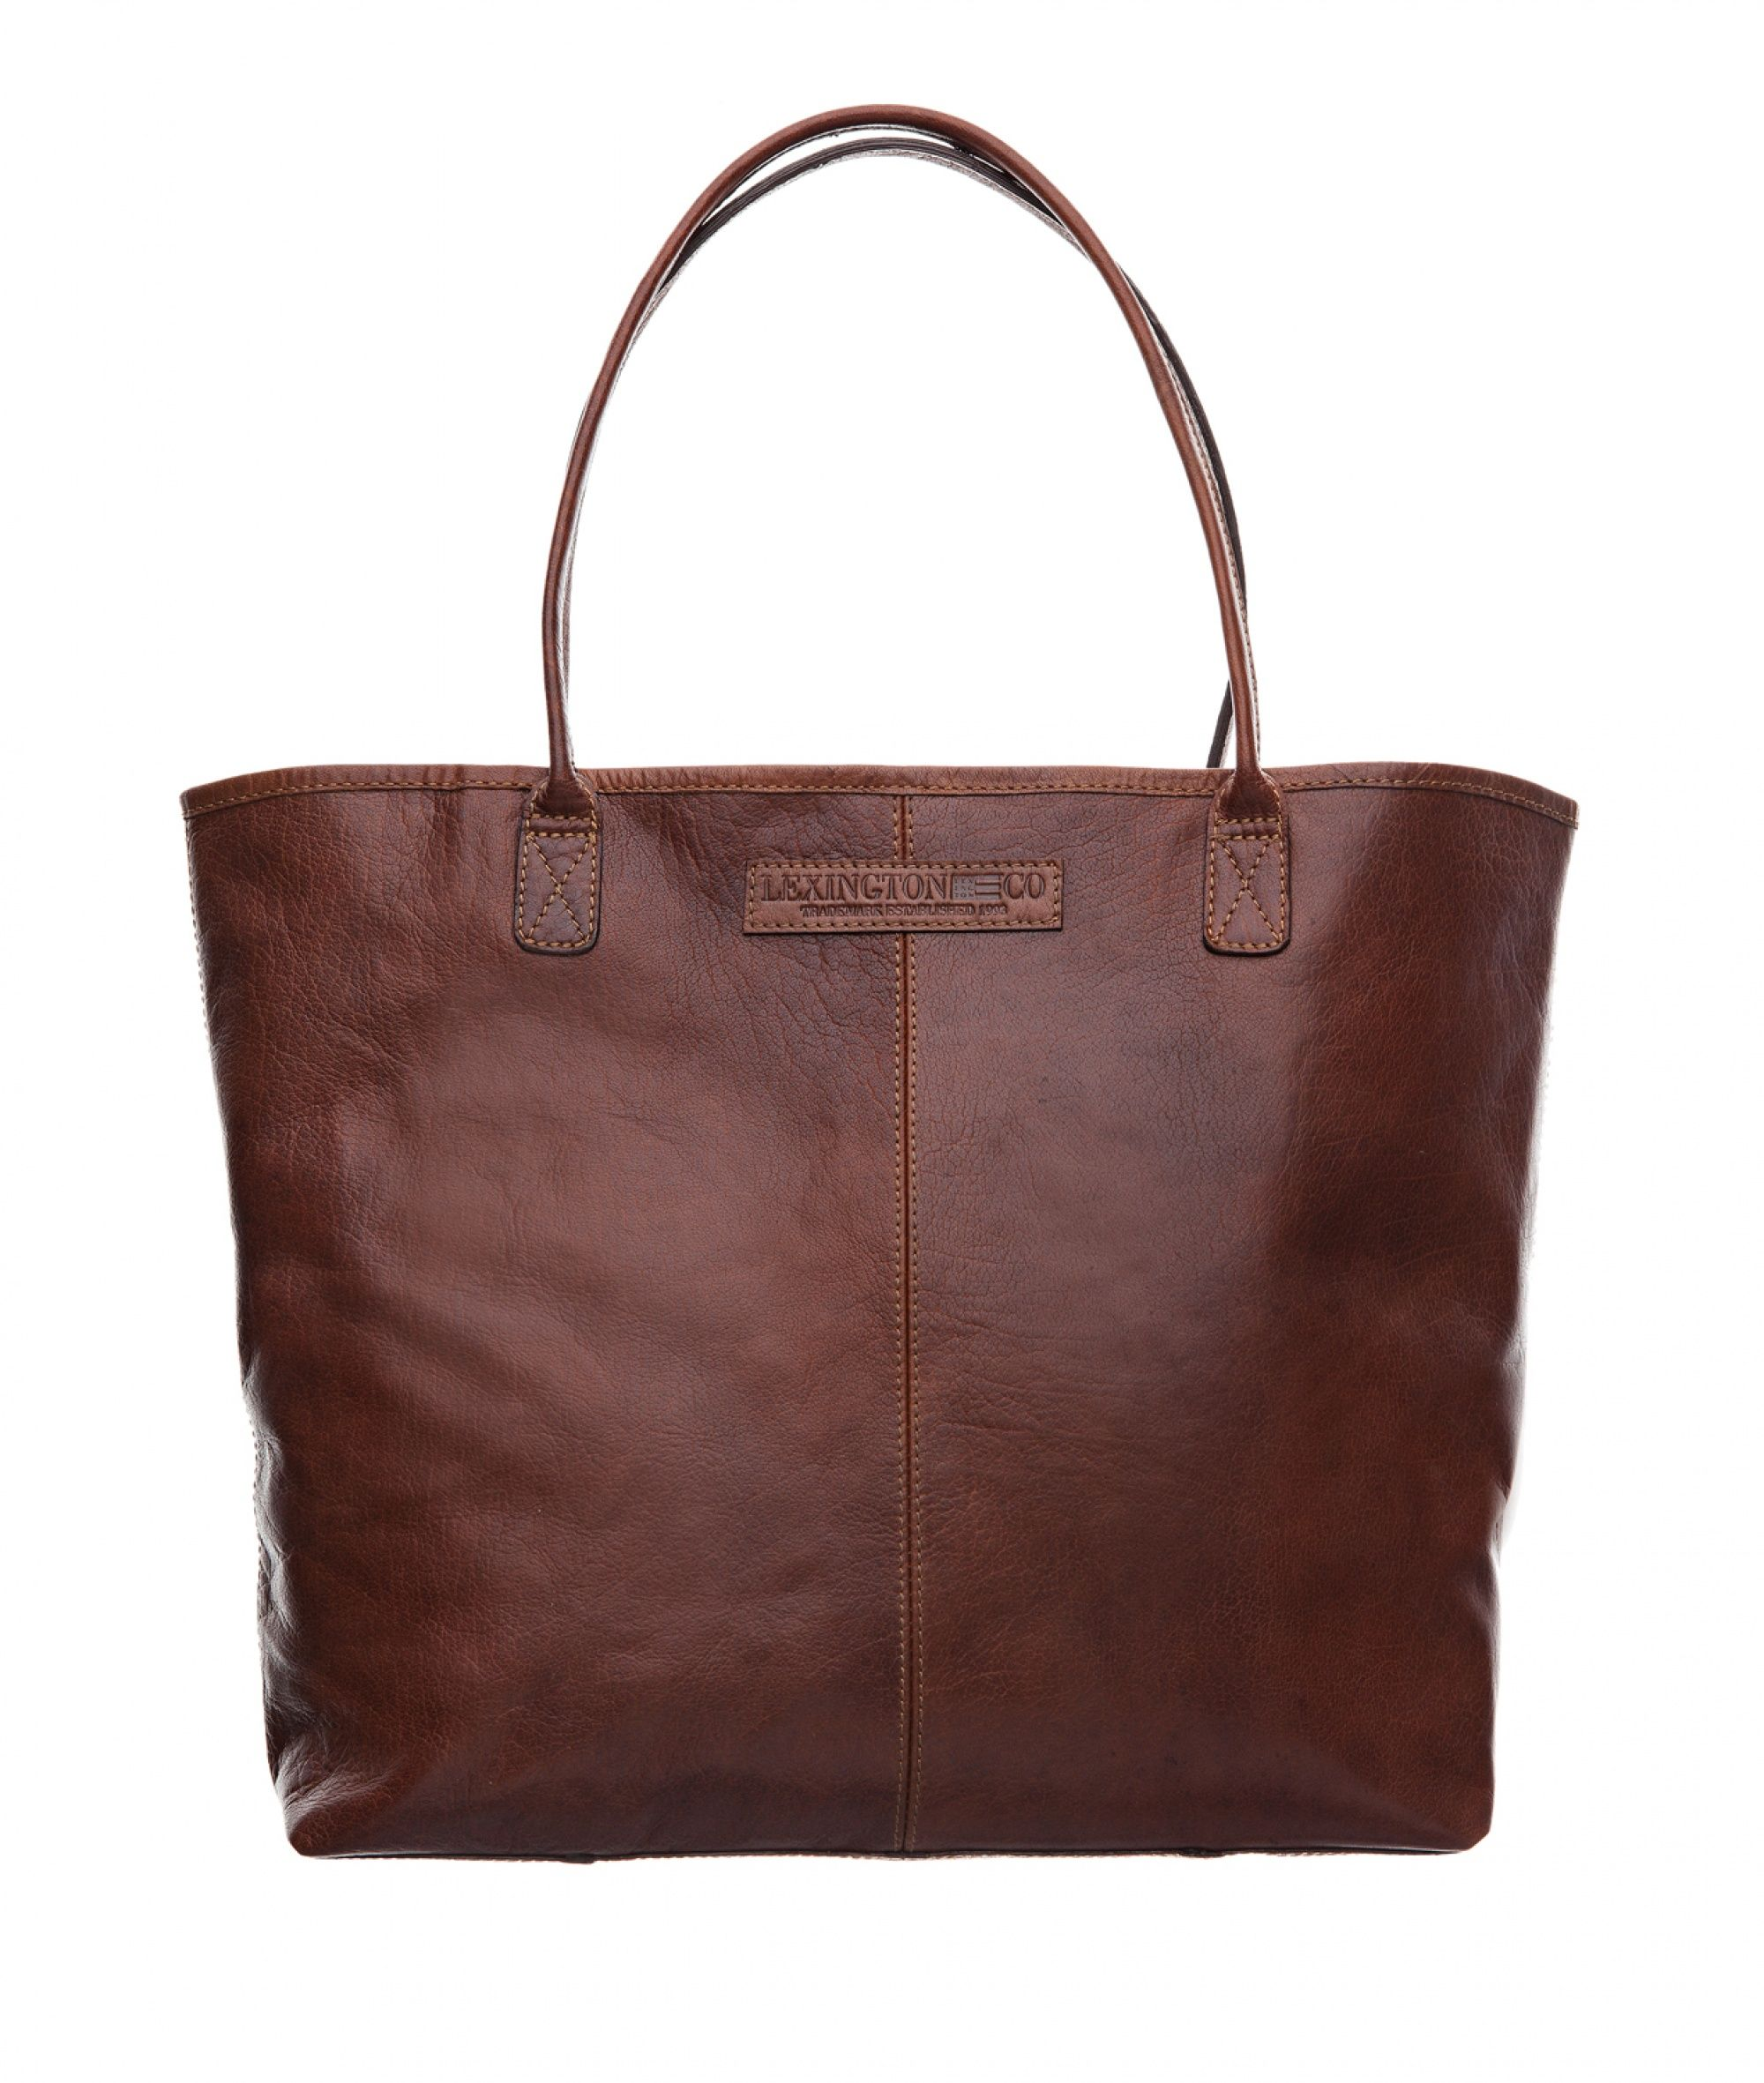 Lexington Mayflower Leather Tote Bag  53793e6f39e2f